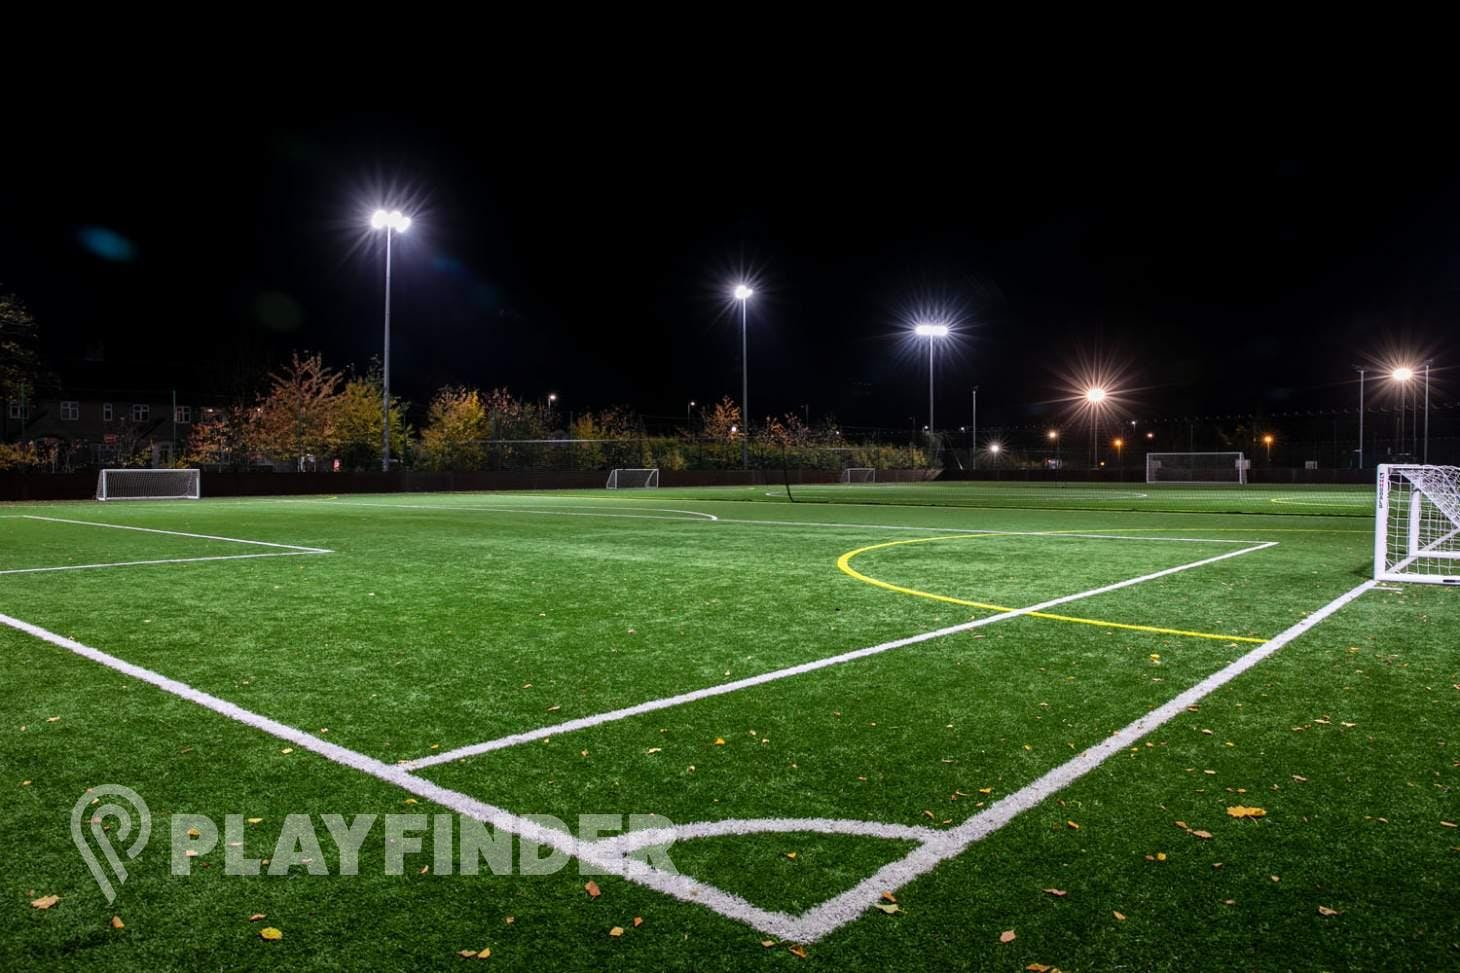 Brentside High School 11 a side | 3G Astroturf football pitch